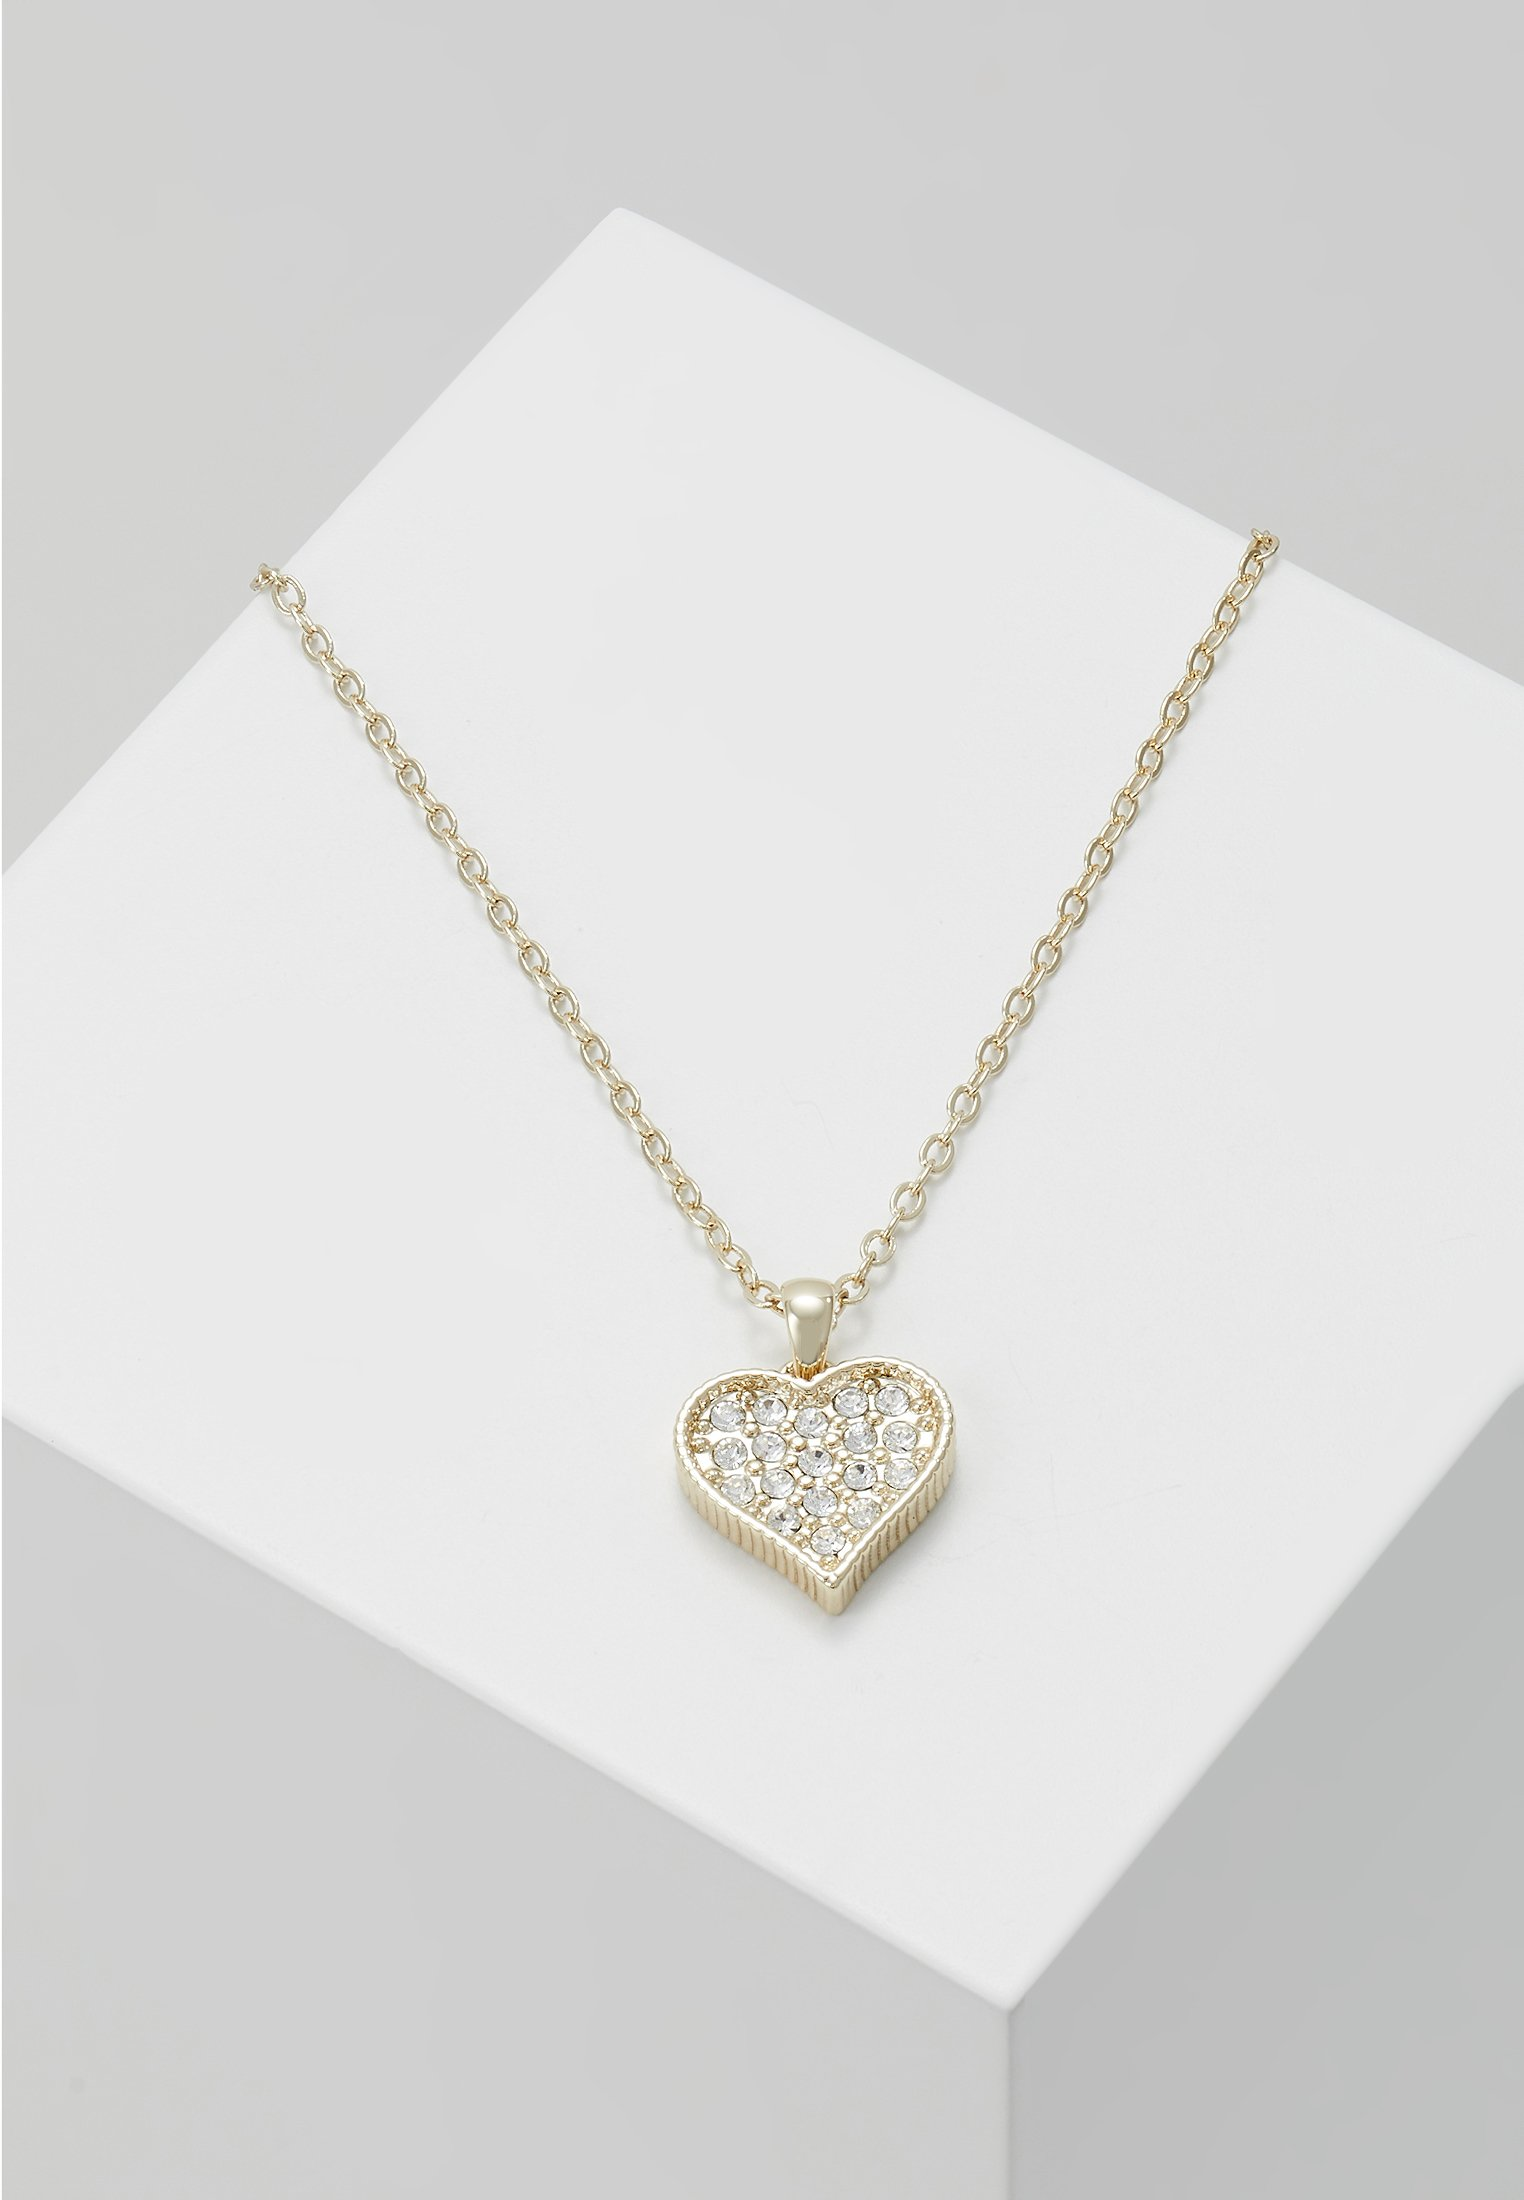 Baker Heyna Hidden Heart PendantCollier crystal Ted coloured Gold Pale T53uKJFcl1